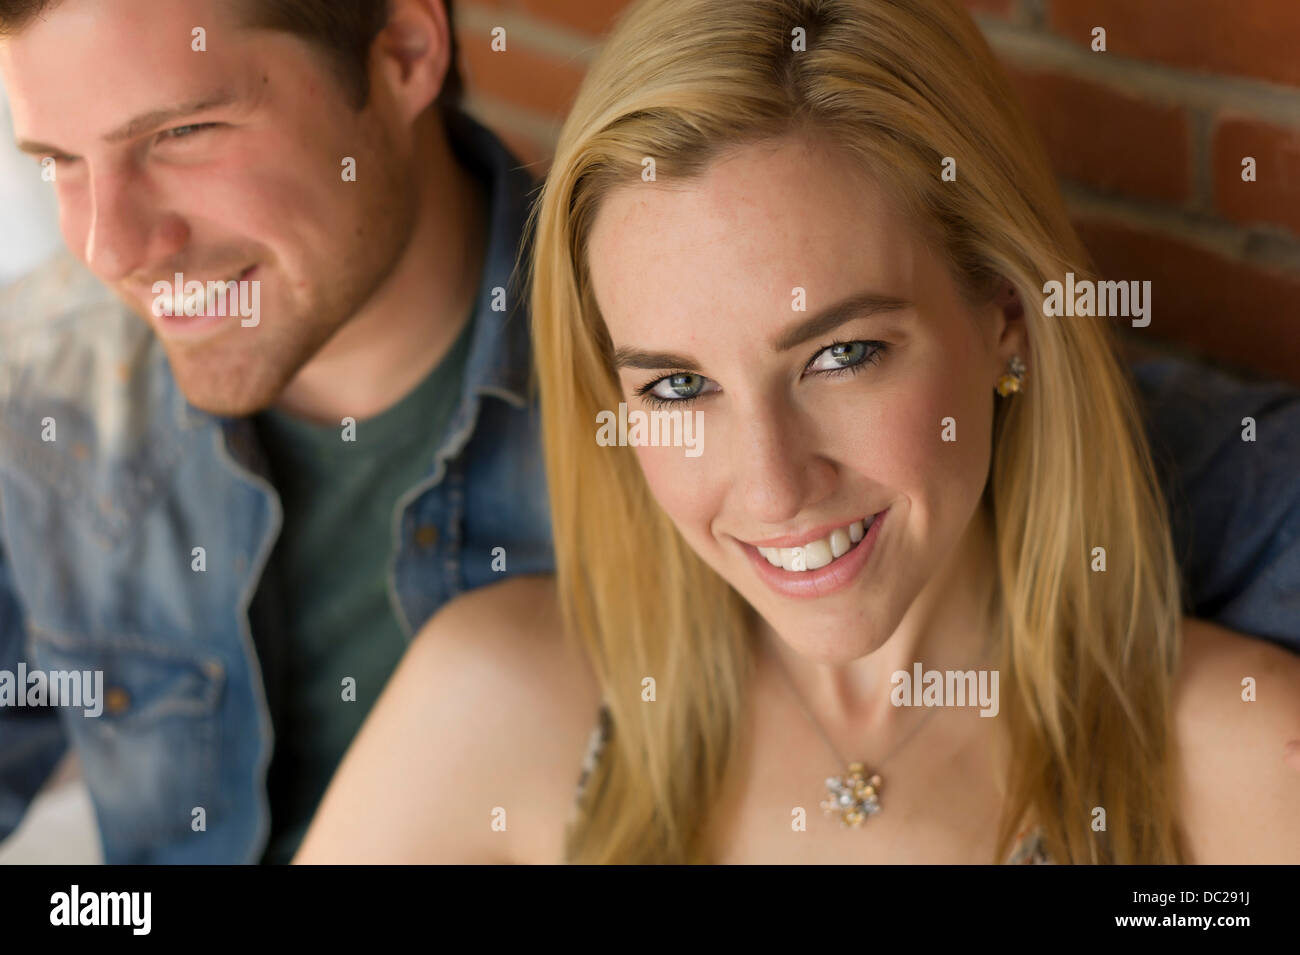 Portrait of couple, focus on young woman smiling - Stock Image